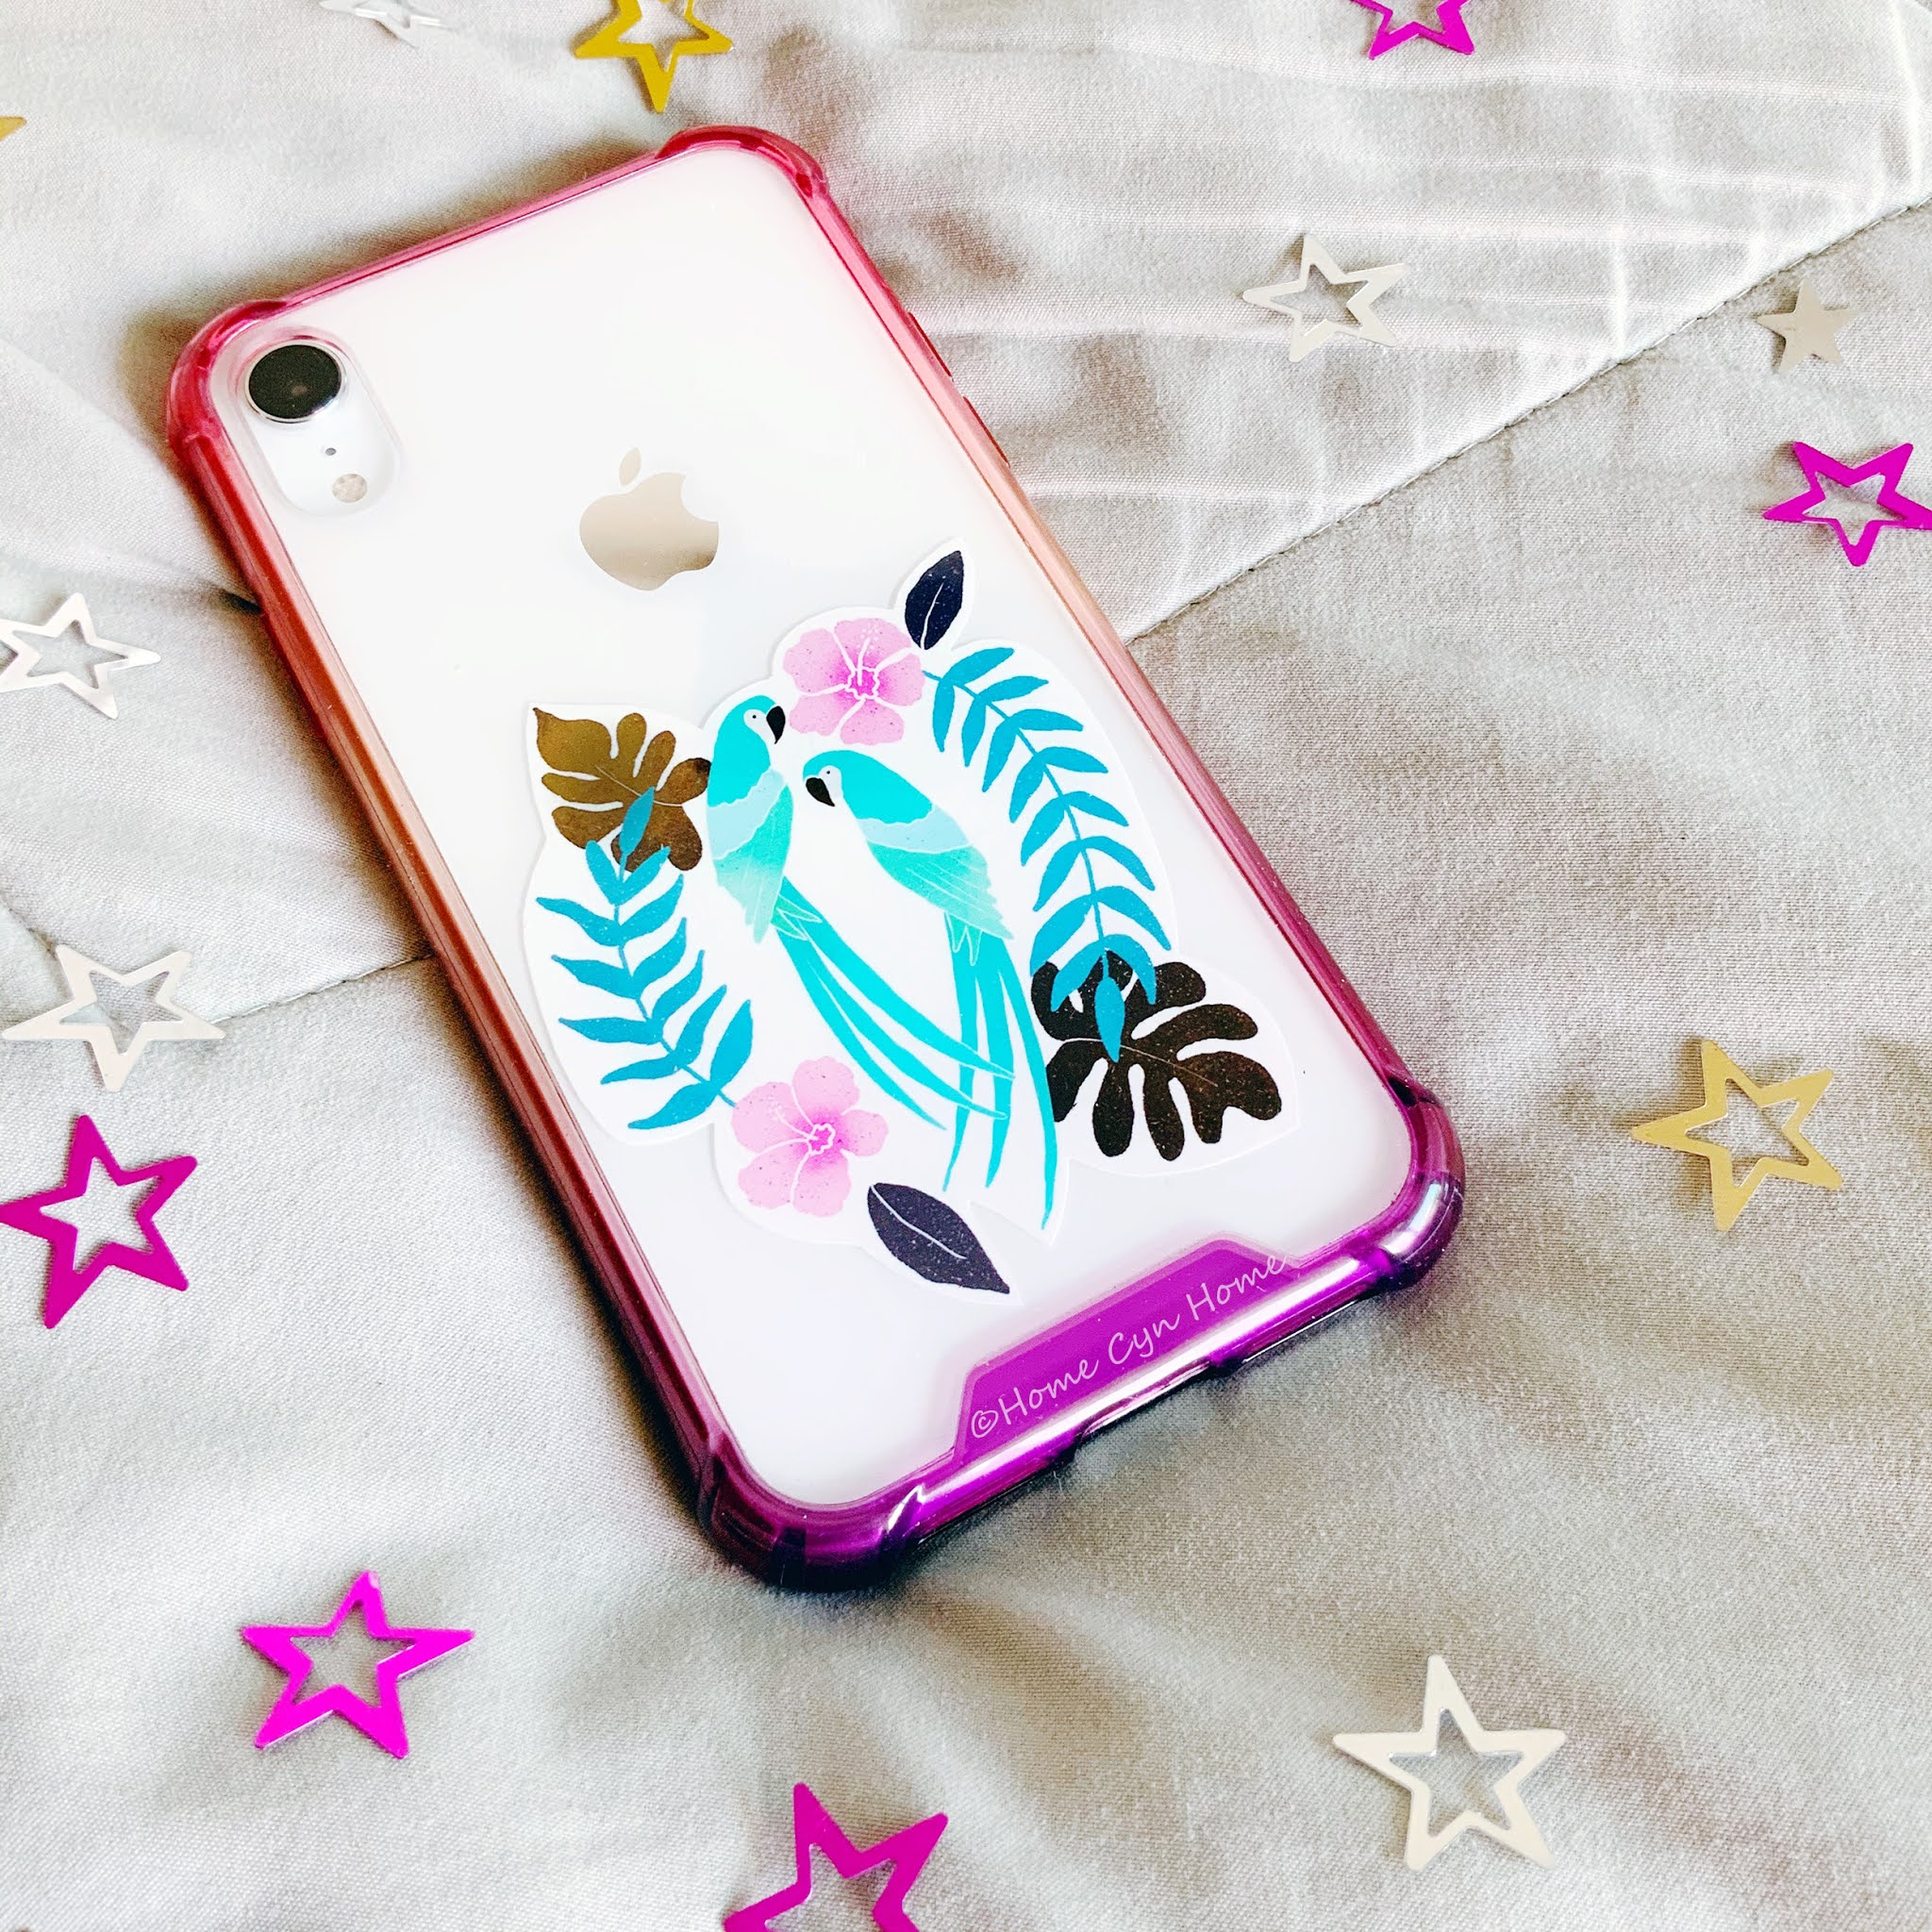 big fancy designer cases with artwork are on the way out. personalise your phone with a clear case and stickers instead